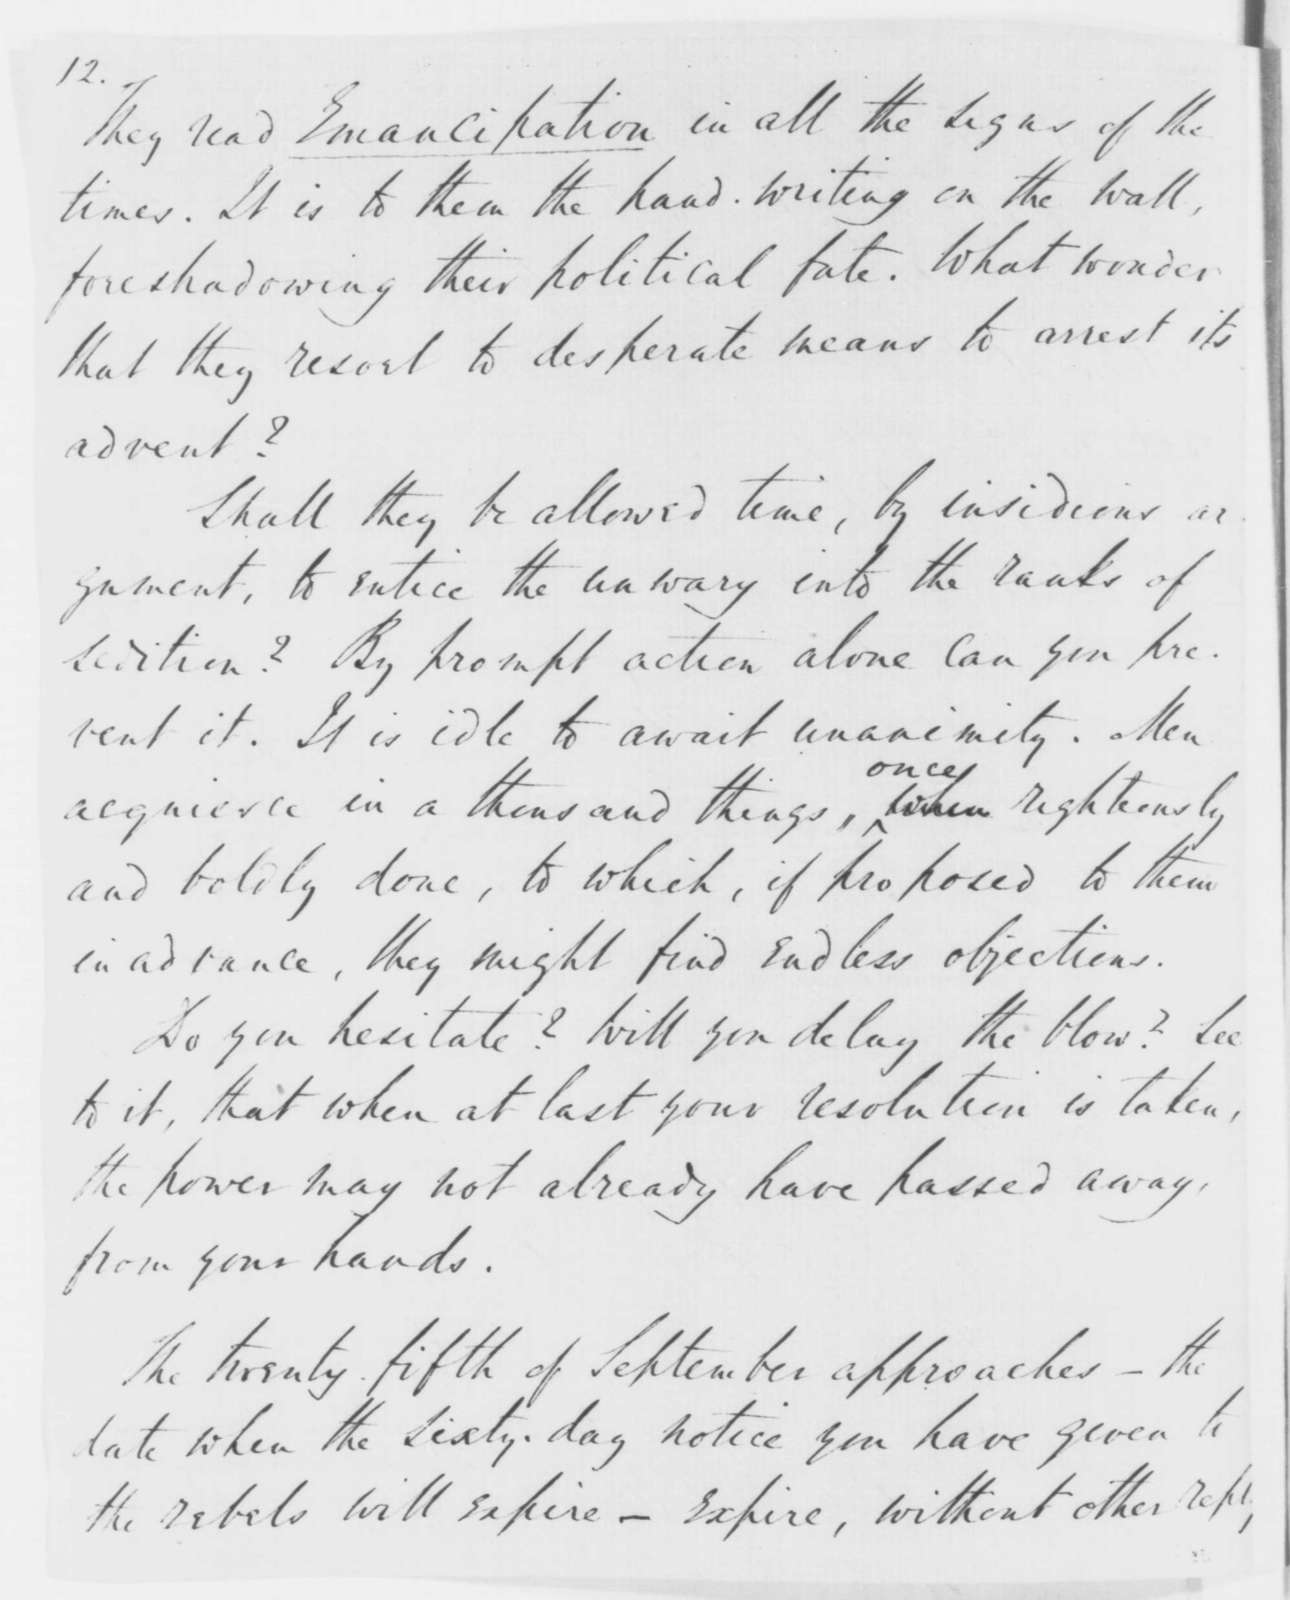 Robert Dale Owen to Abraham Lincoln, Wednesday, September 17, 1862  (Recommends emancipation proclamation)